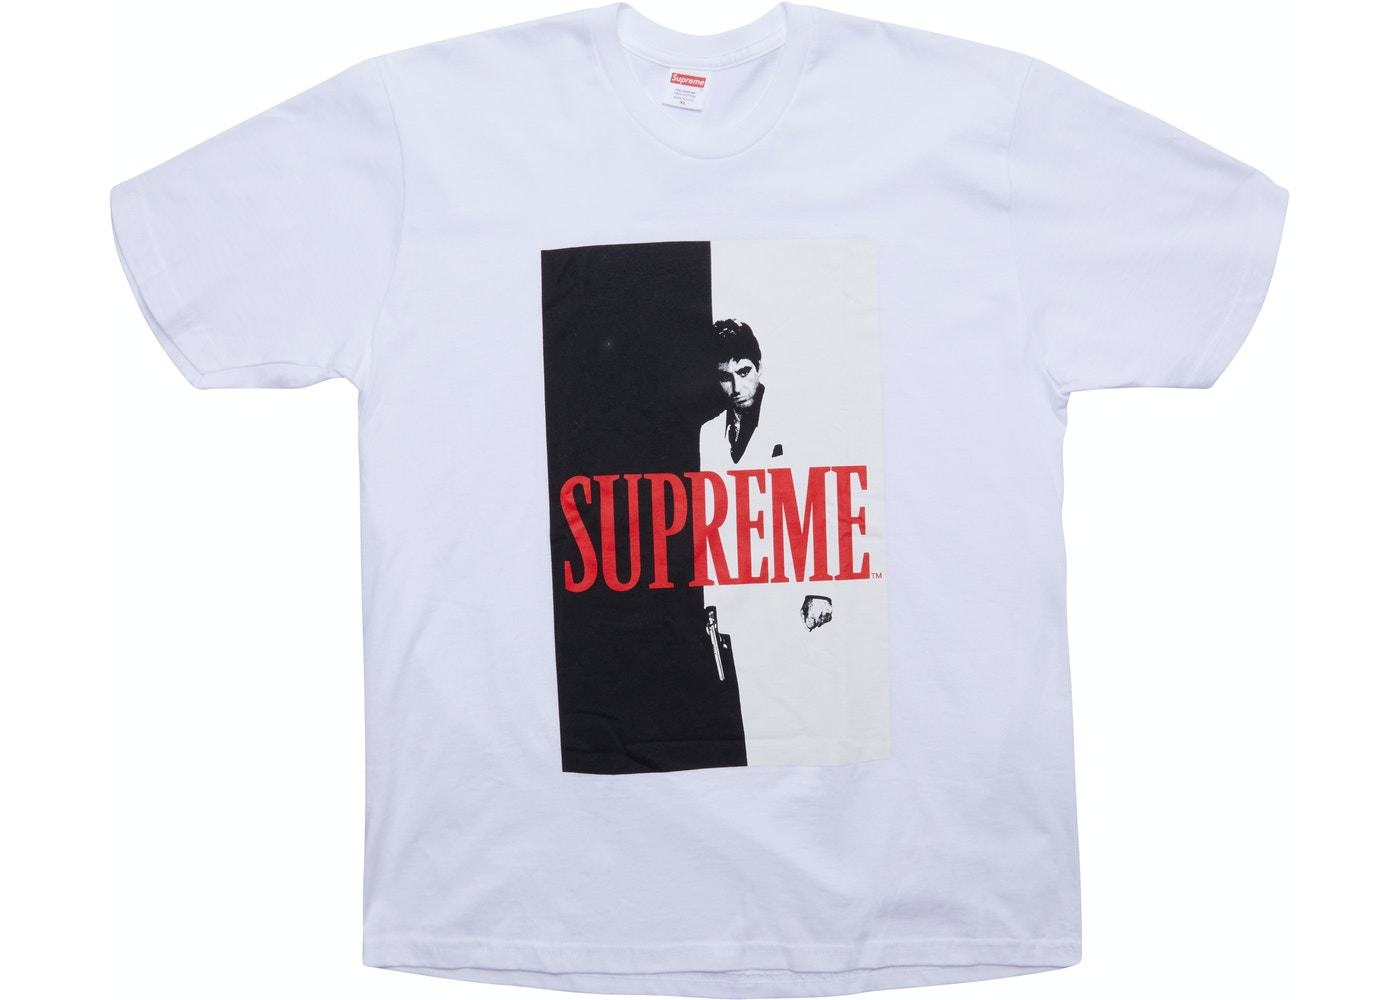 6b3824aec75 Supreme Scarface Split Tee White - FW17